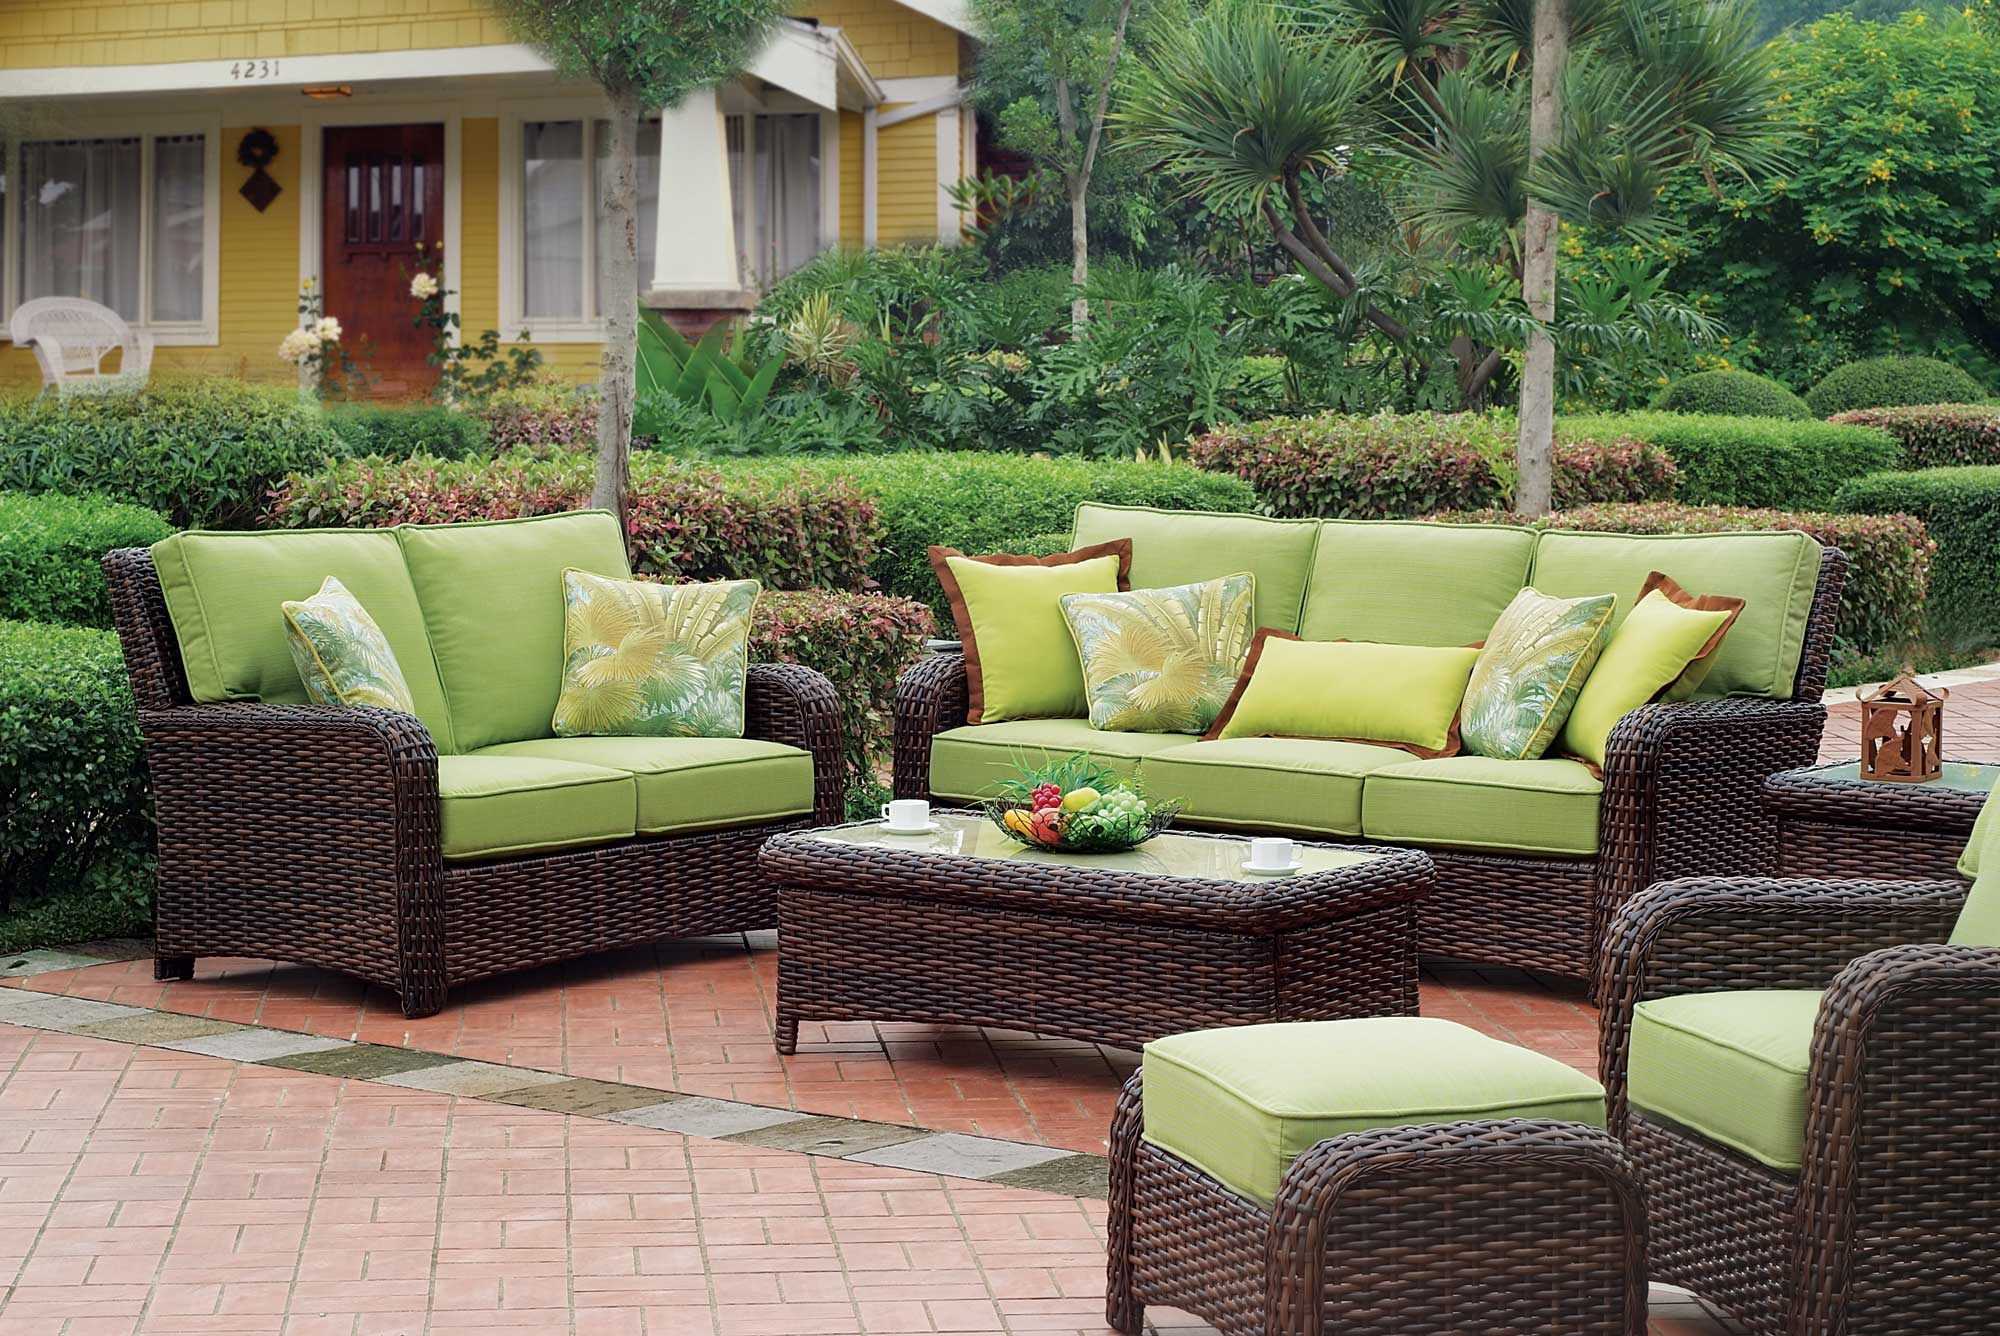 How to Opt Your Outdoor Living Space with Best Patio ... on Living Spaces Patio Set id=11652